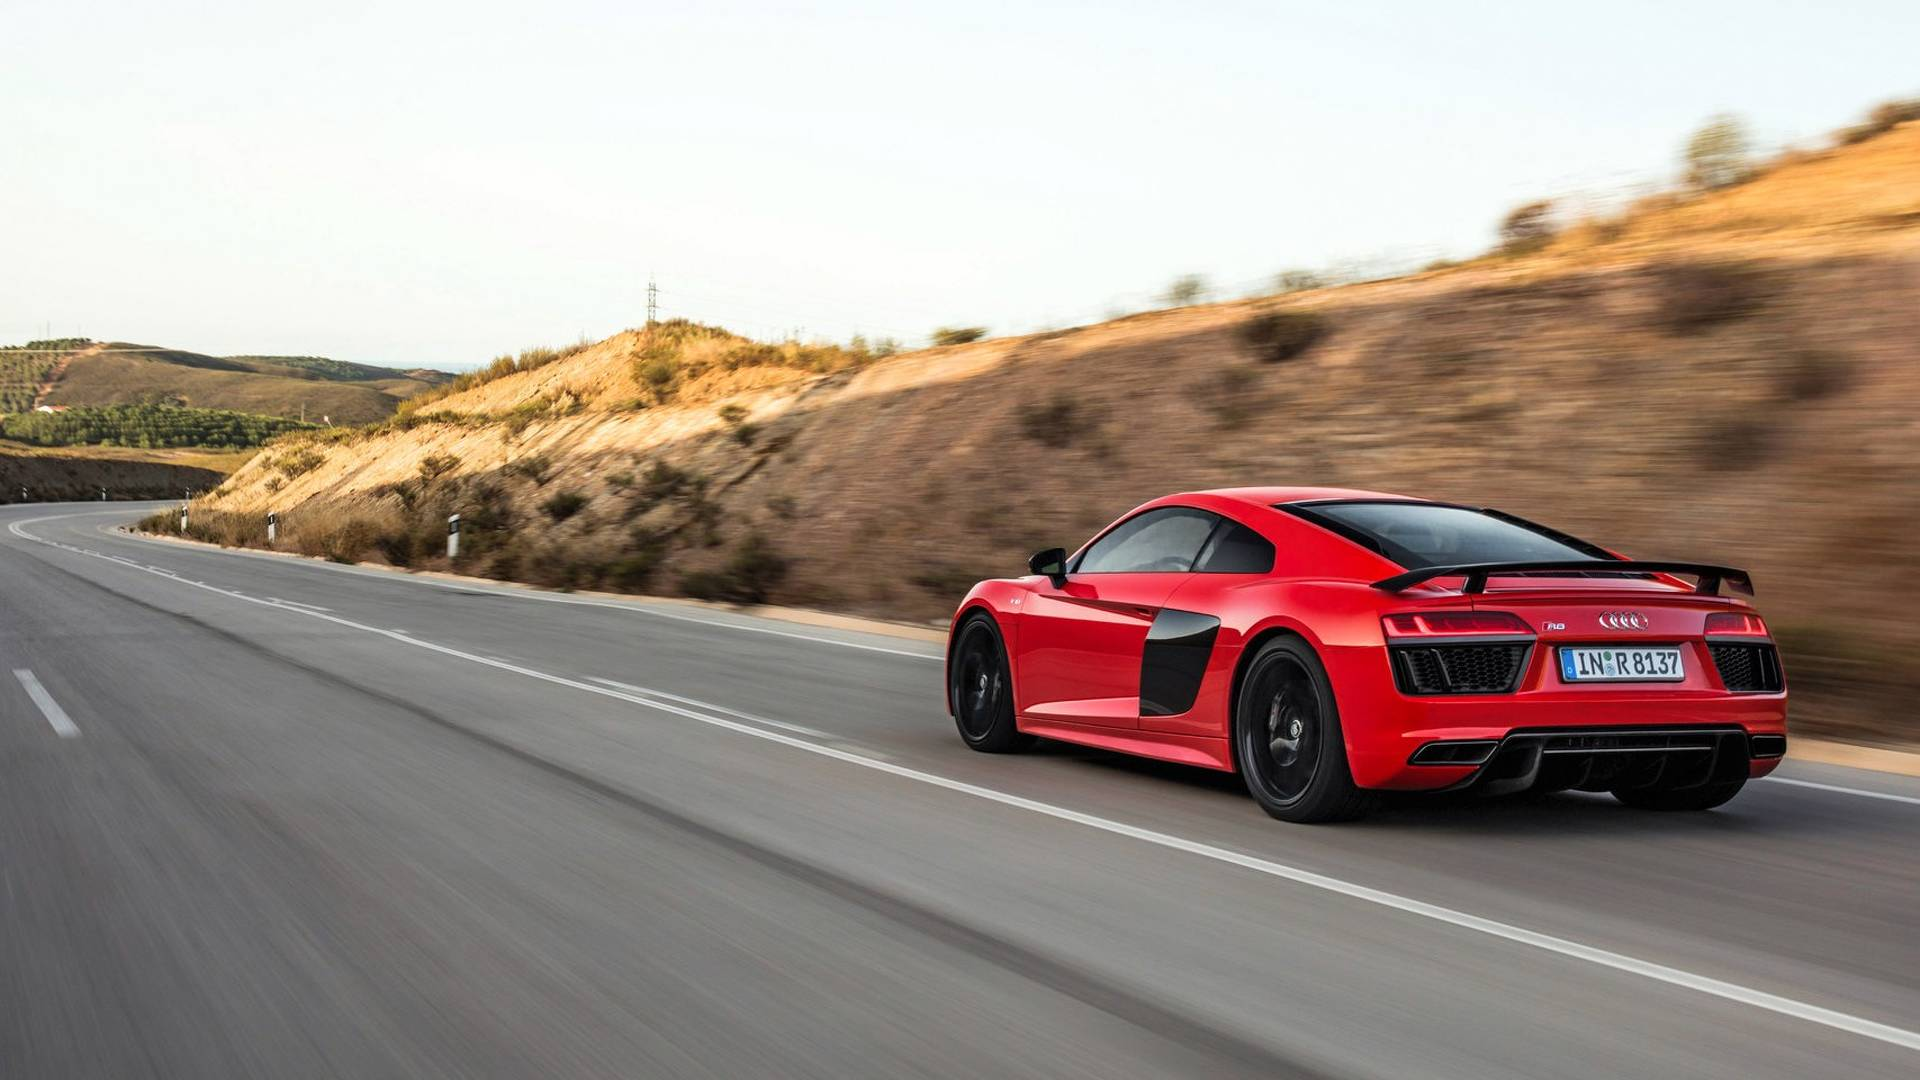 Buy The Audi R8 Neuberg Edition Get Samsung Tablet For Free